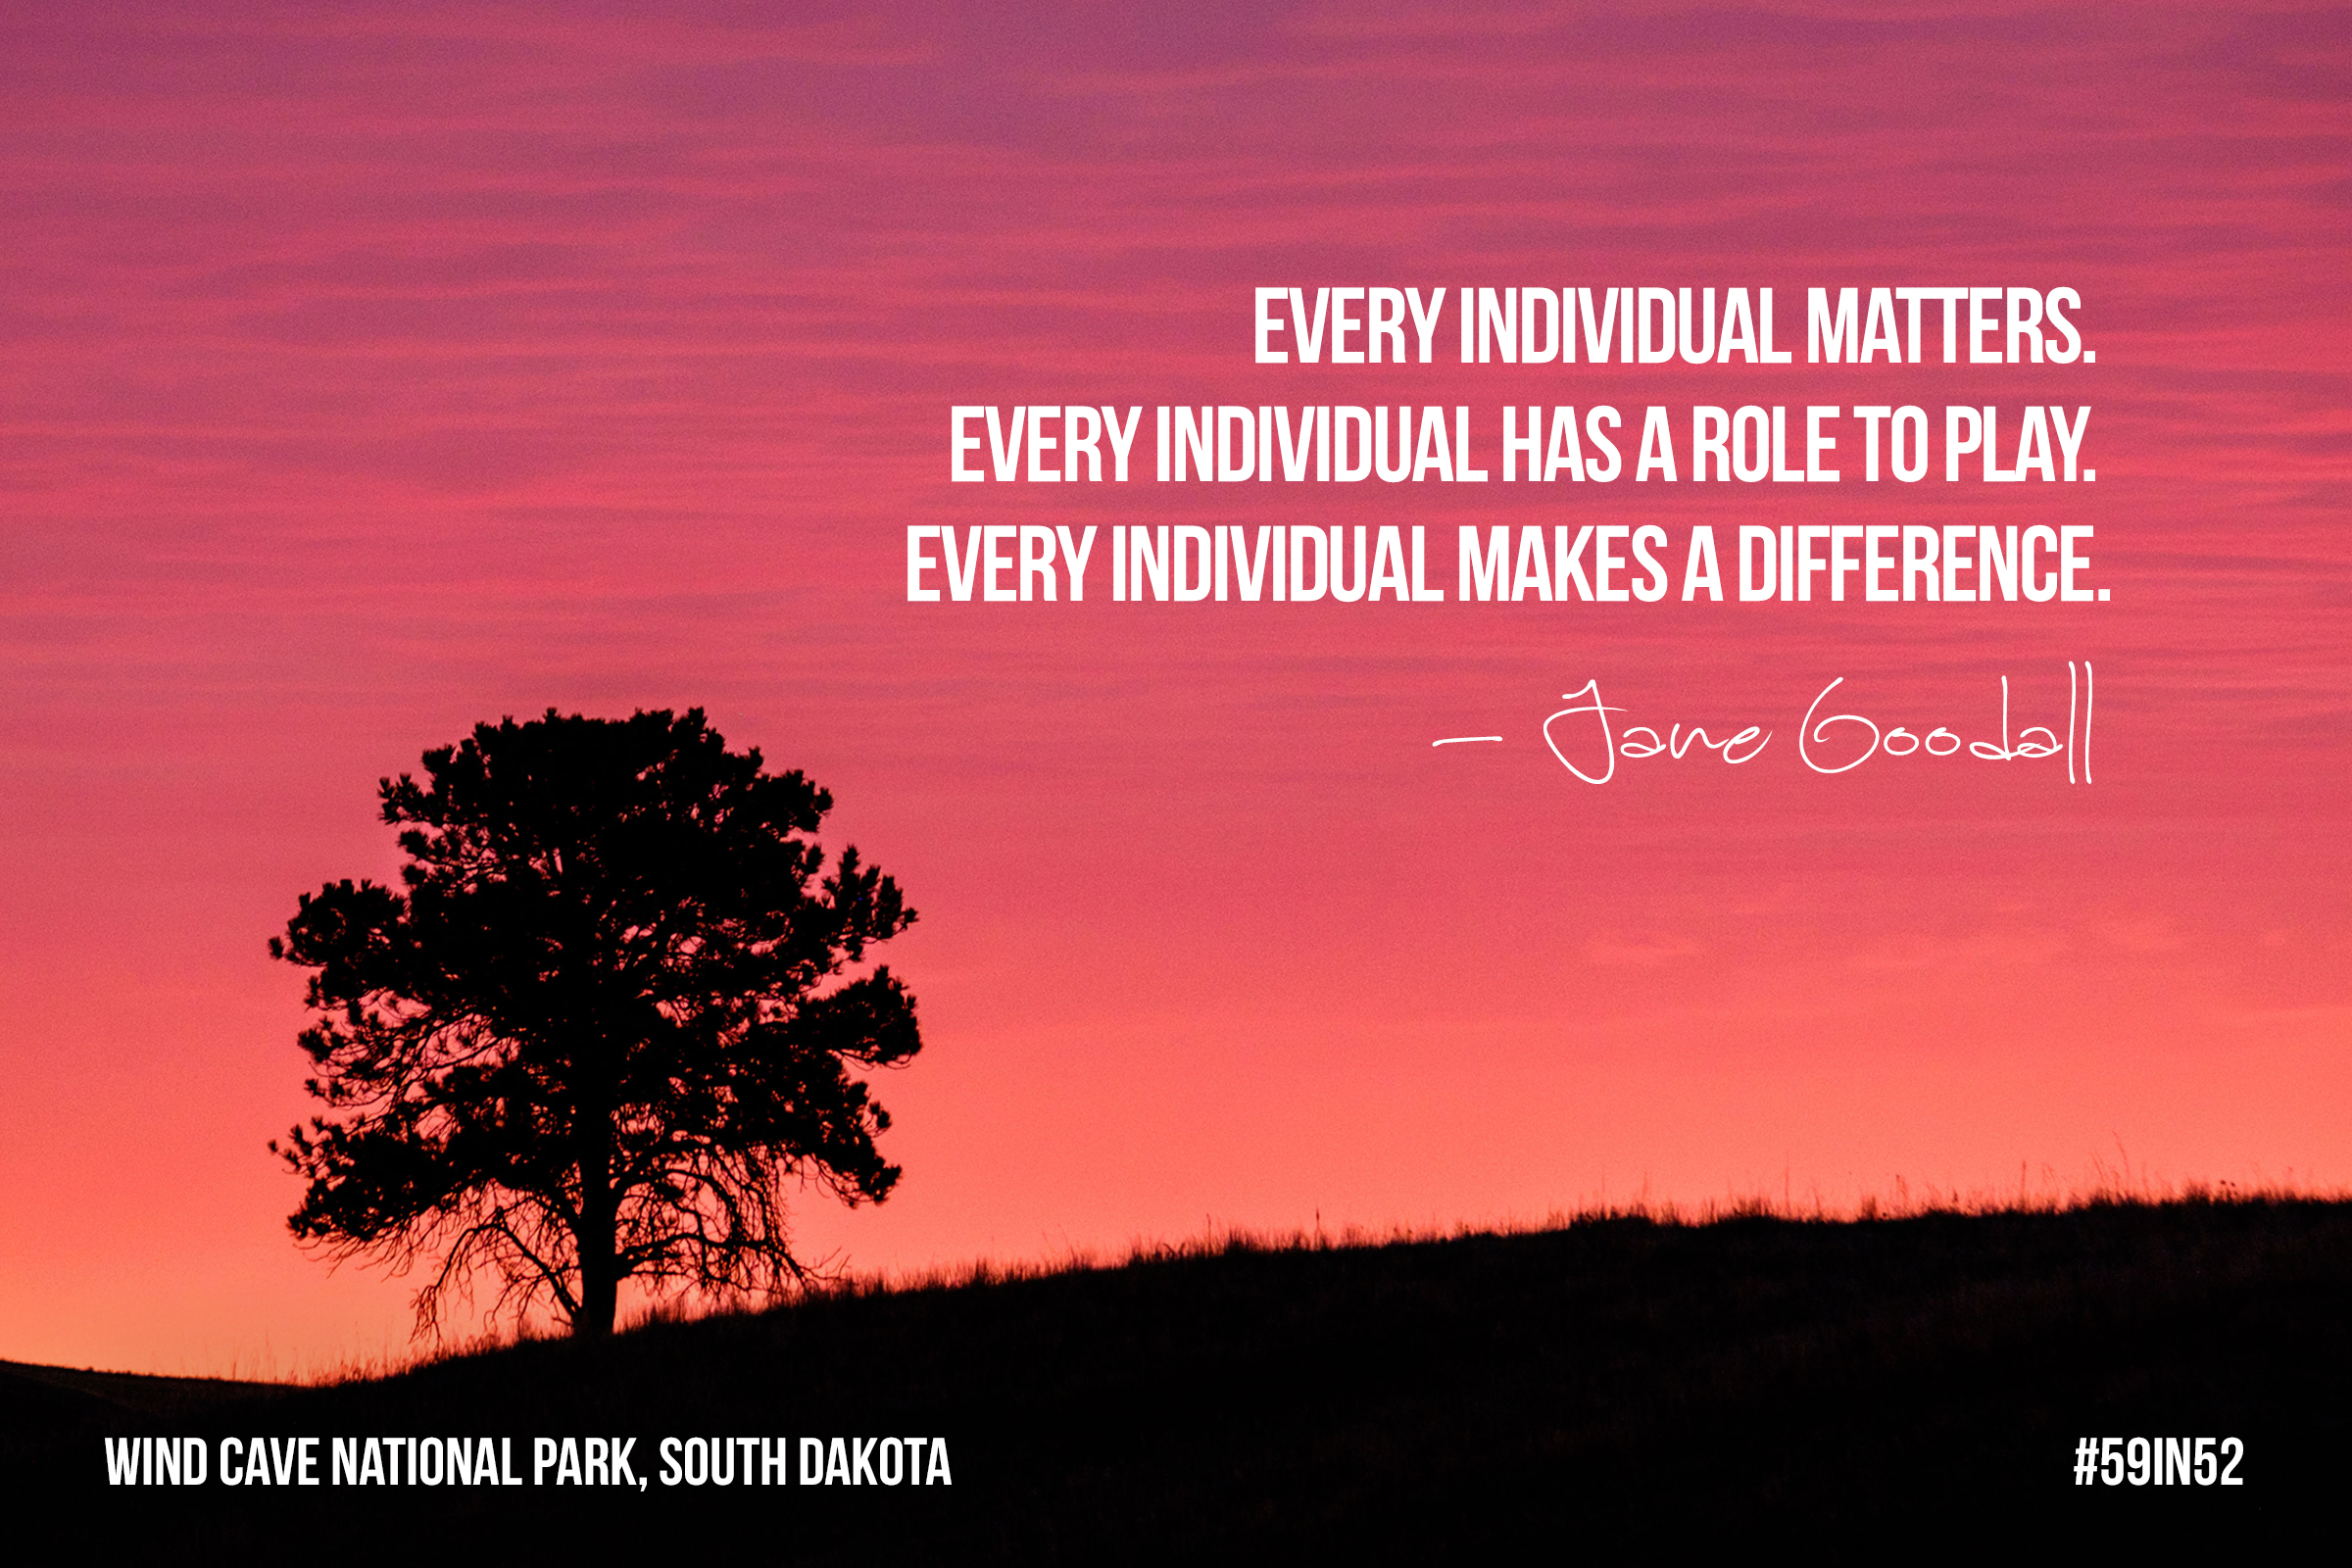 """Every individual matters. Every individual has a role to play. Every individual makes a difference."" - Dr. Jane Goodall"